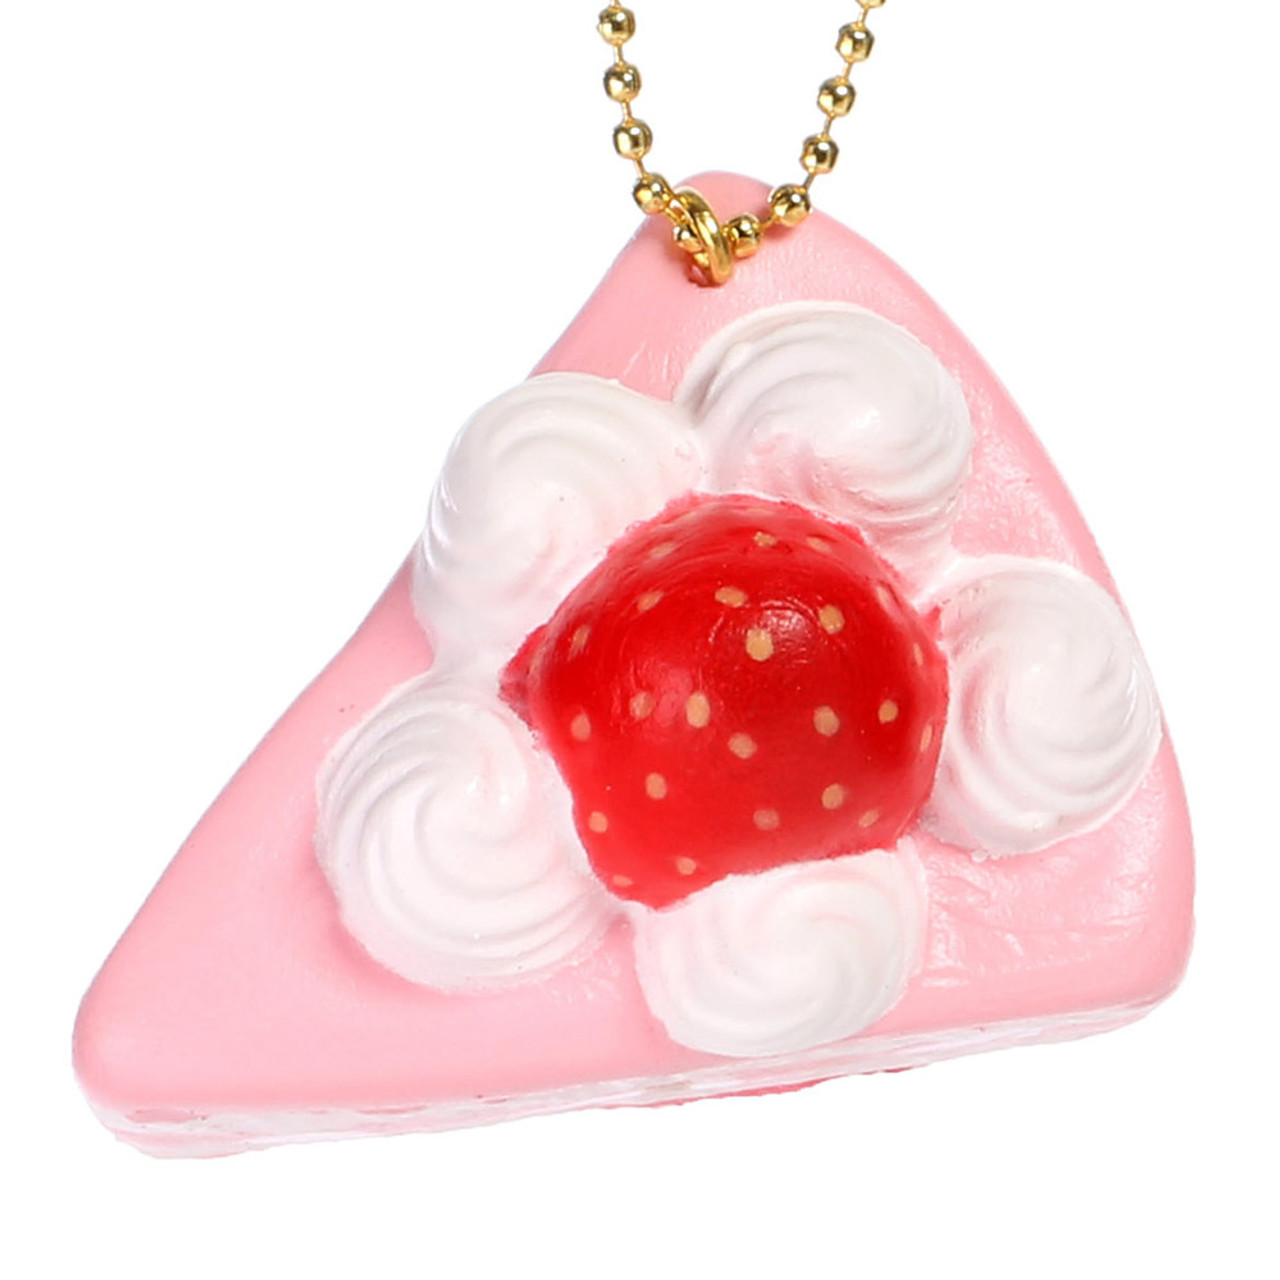 Café De N Soft Squishy Cellphone Charms - Strawberry Fruit Pulp with Cream Shortcake ( Front View )